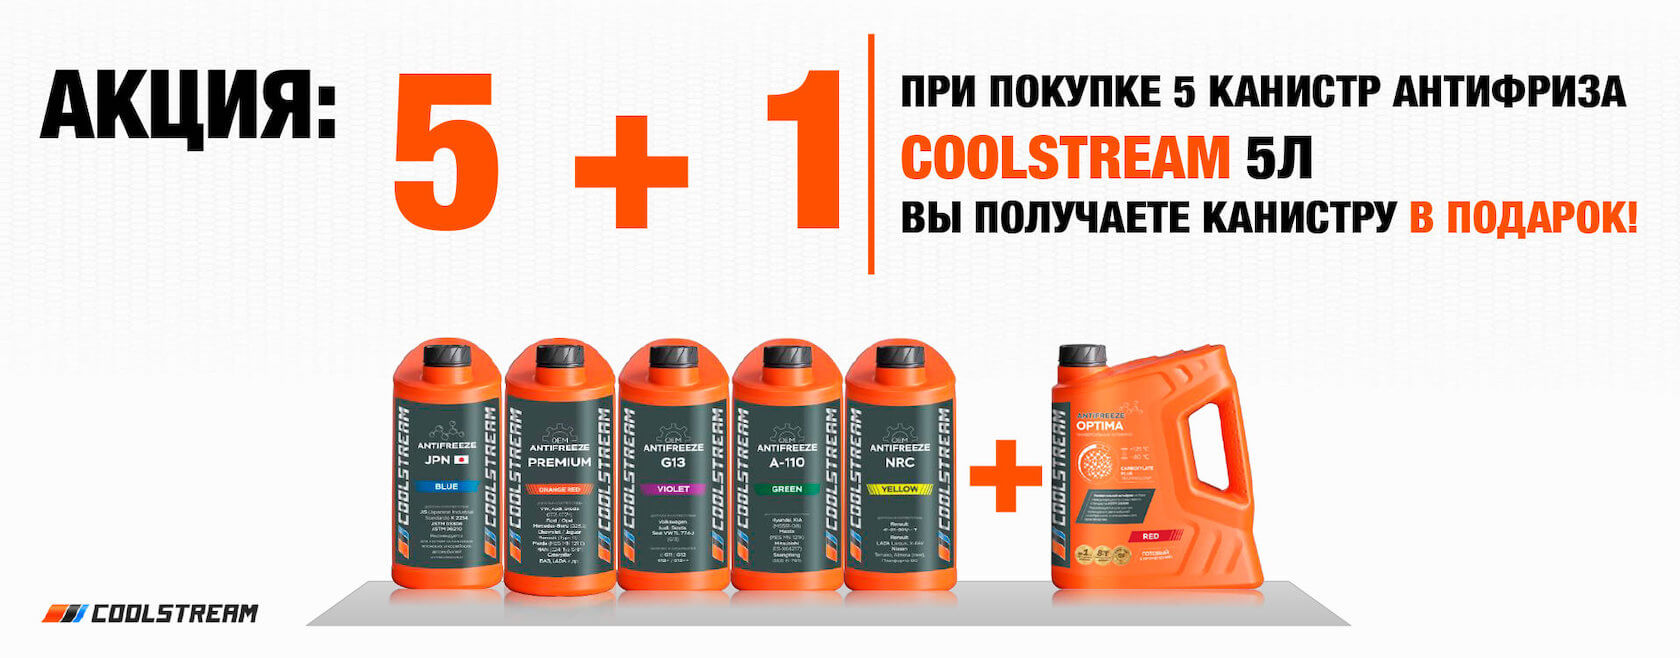 Coolstream site